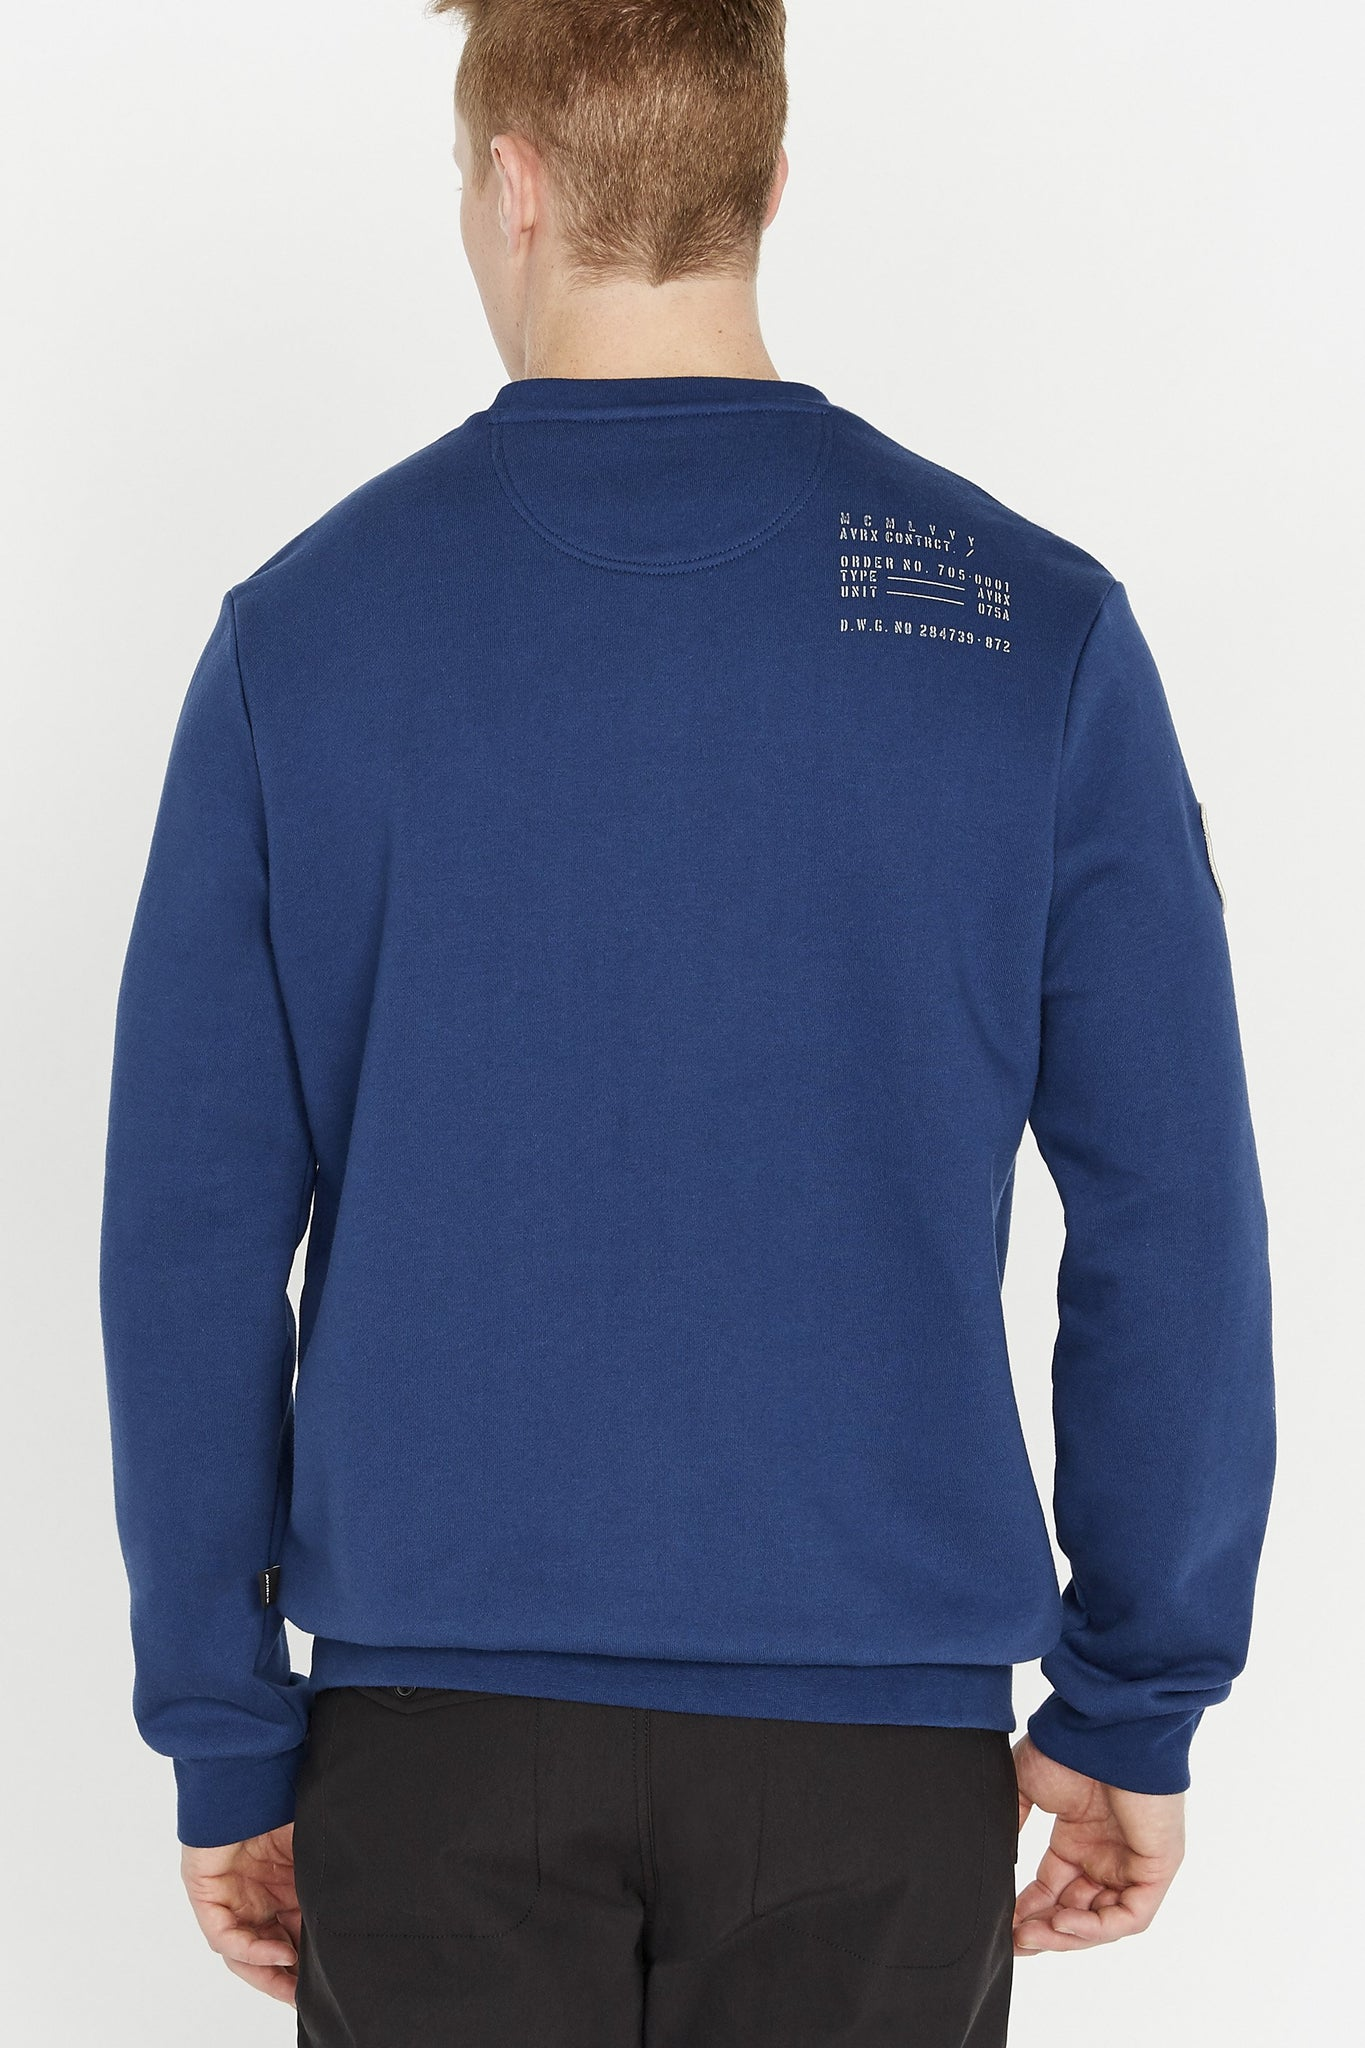 Back view of men wearing a blue long sleeve crew neck sweater with utility print on back shoulder